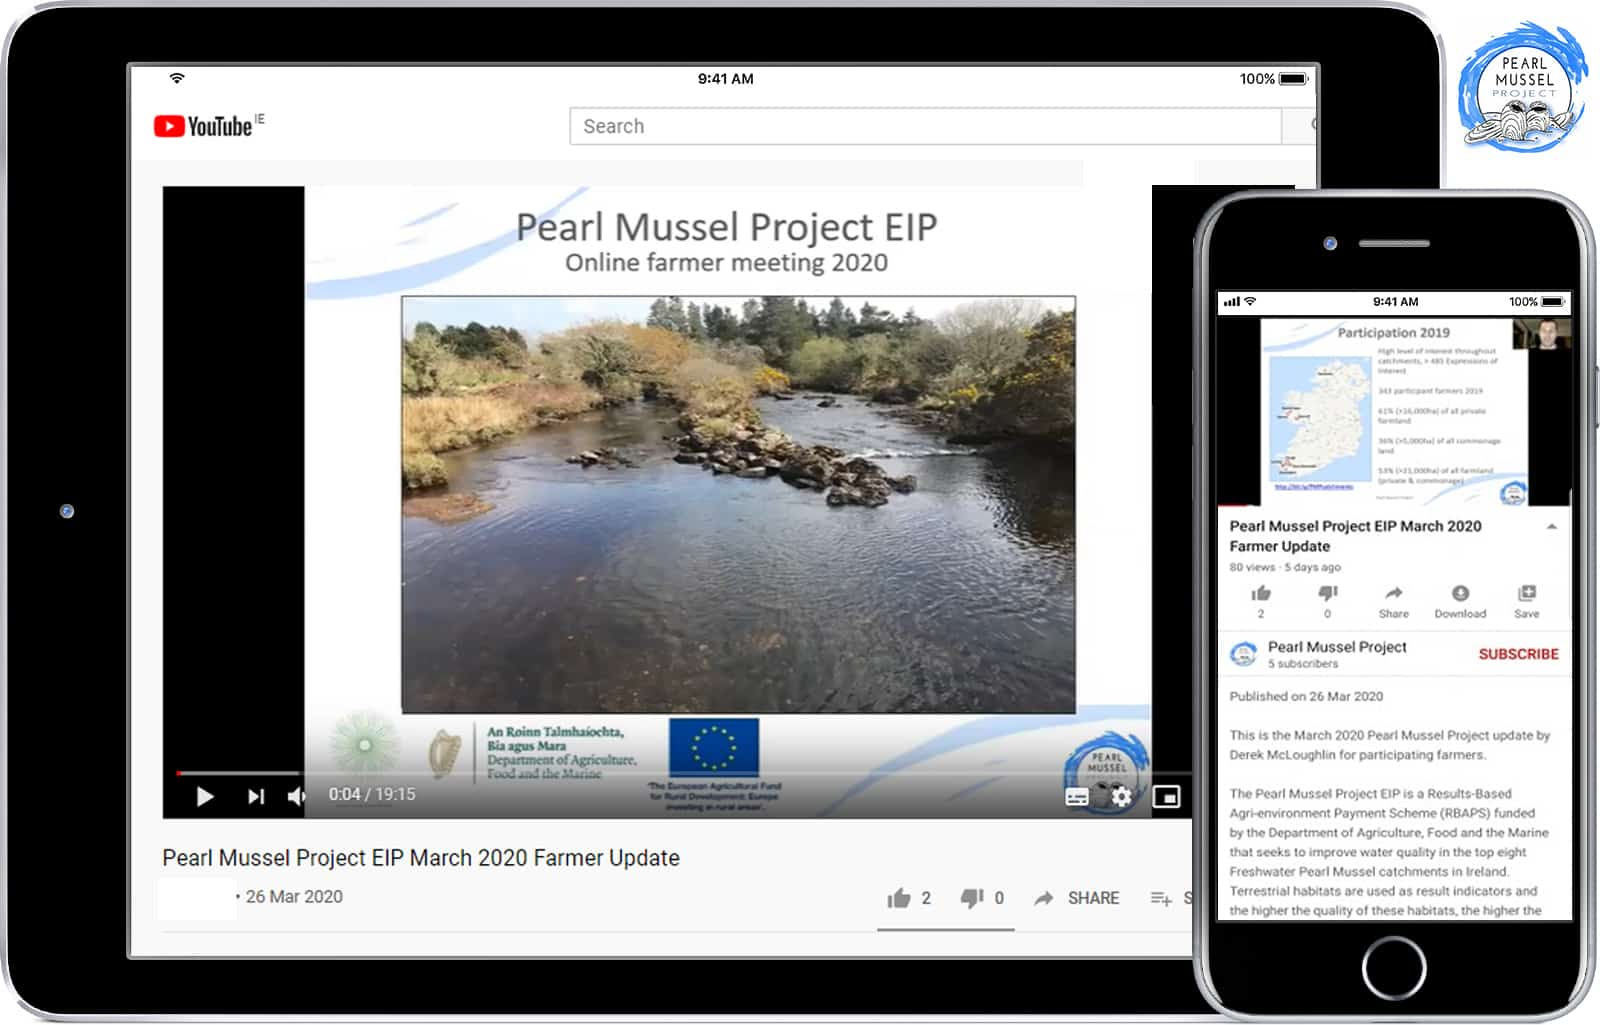 Pearl Mussel Project Online